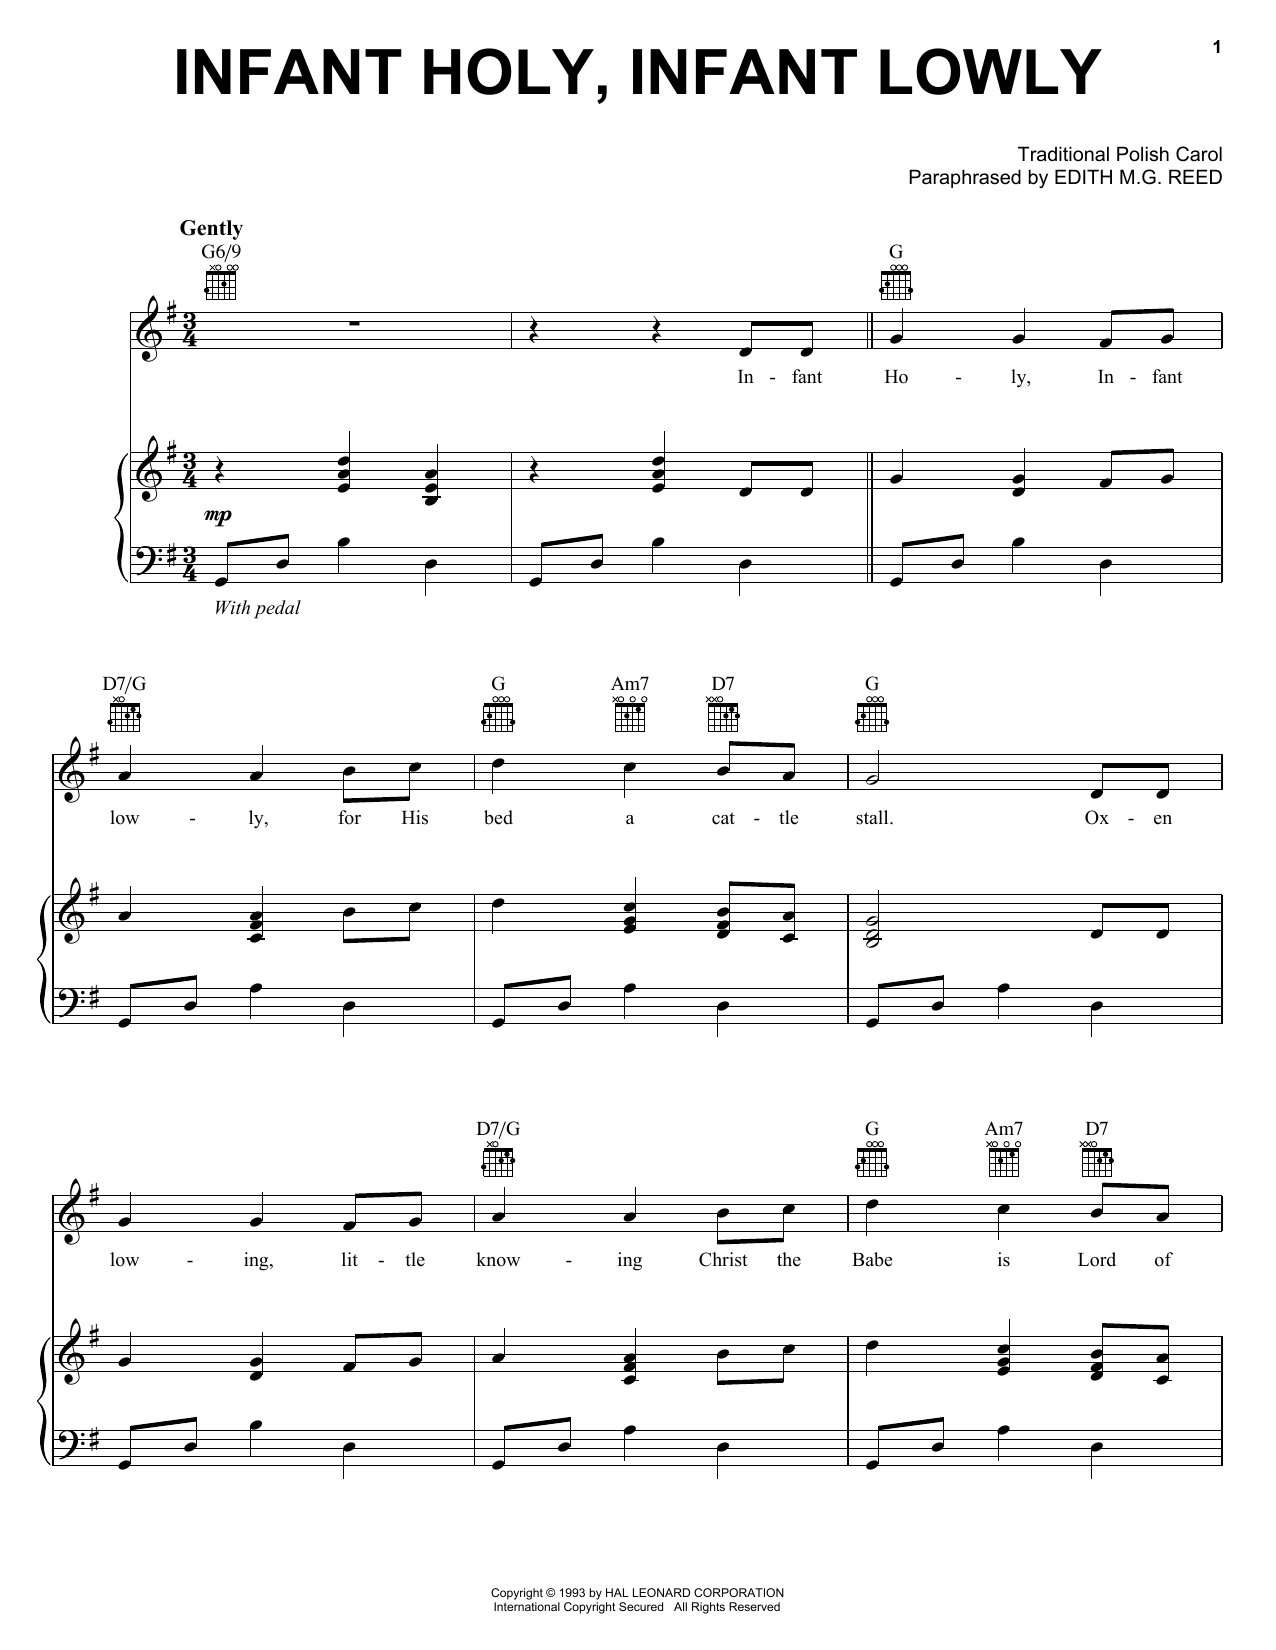 Traditional Polish Carol Infant Holy, Infant Lowly sheet music notes and chords. Download Printable PDF.